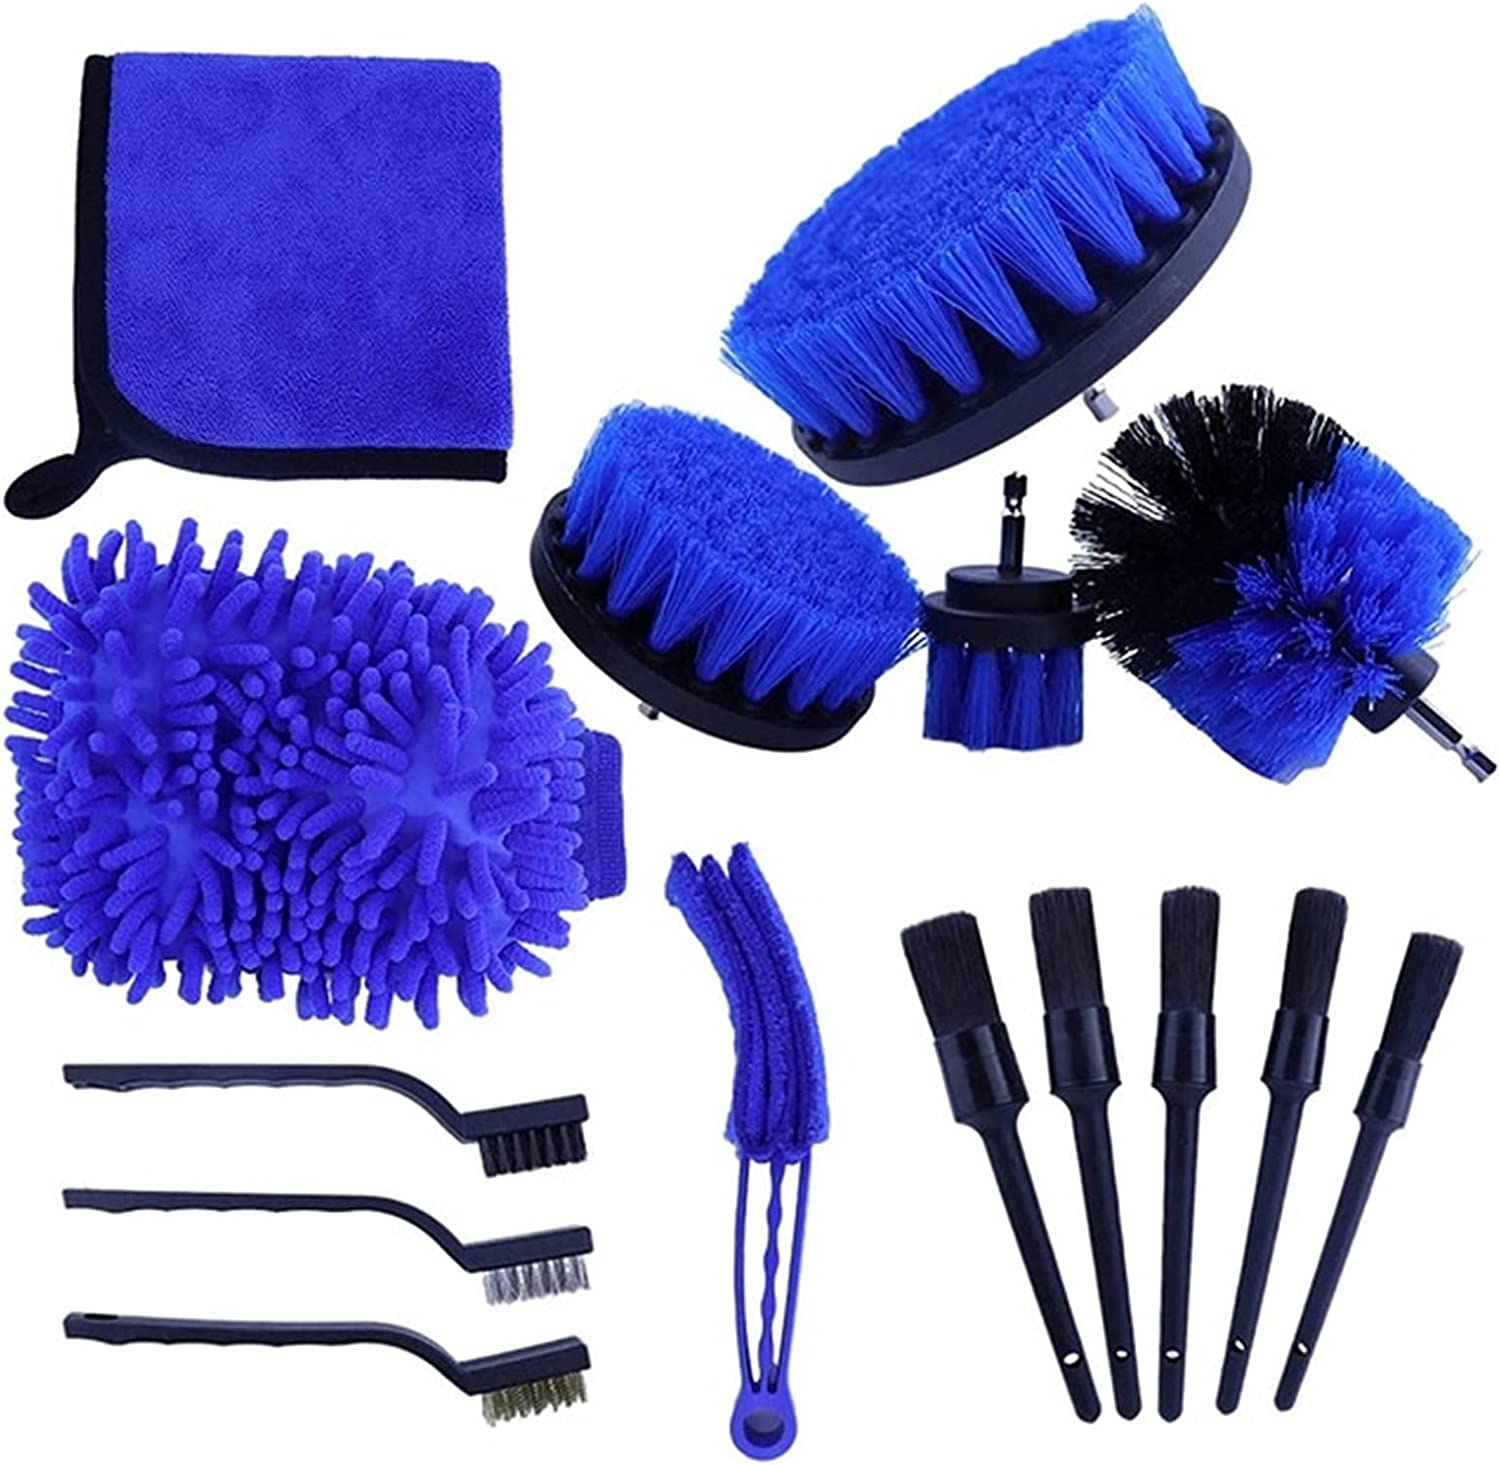 YXIUER 15 Pcs shipfree Auto Detailing depot Brush Colo for Kit Wheels Cleaning